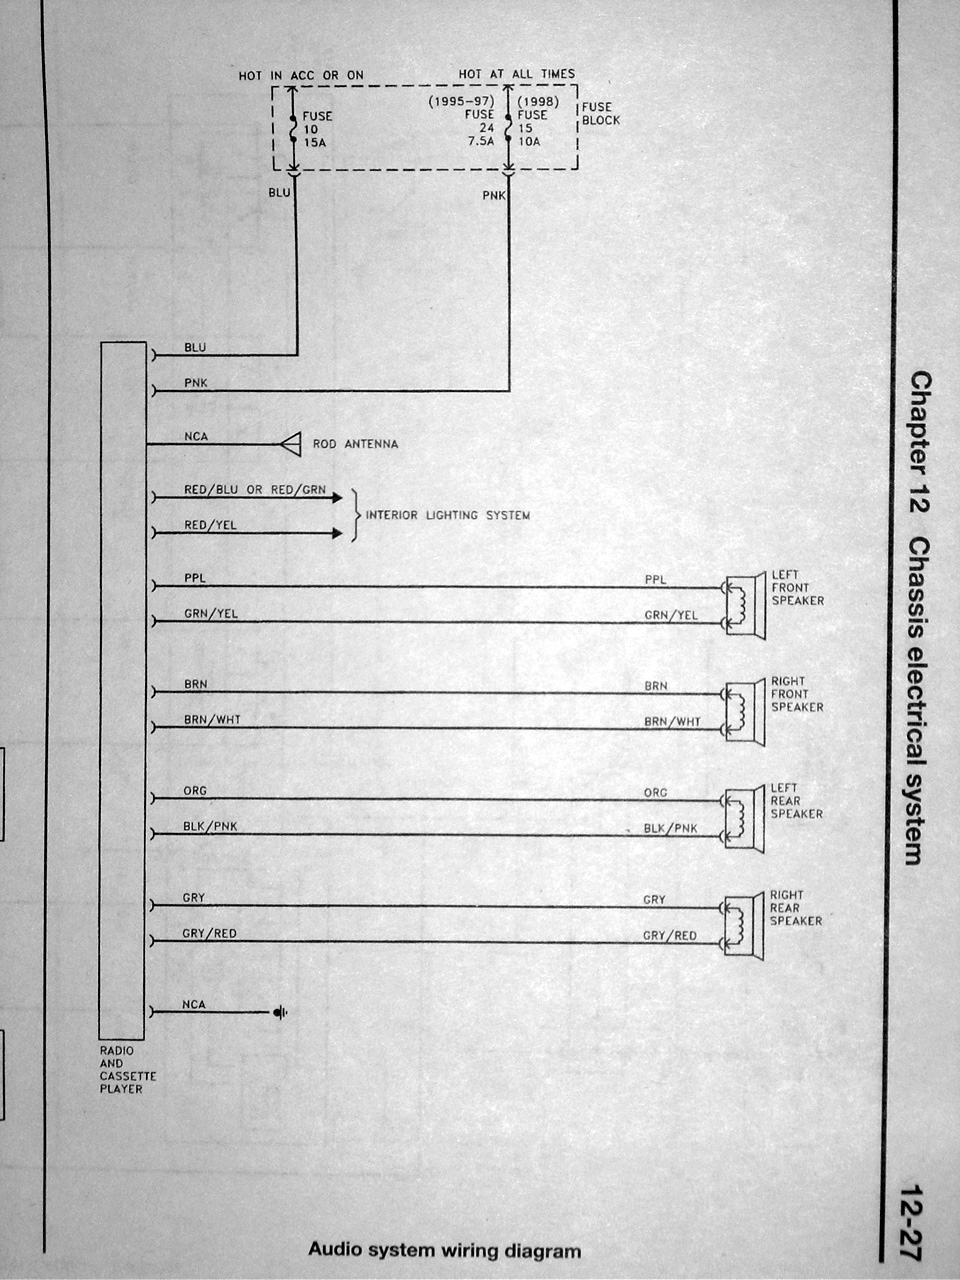 Wiring diagram thread useful info nissan forum asfbconference2016